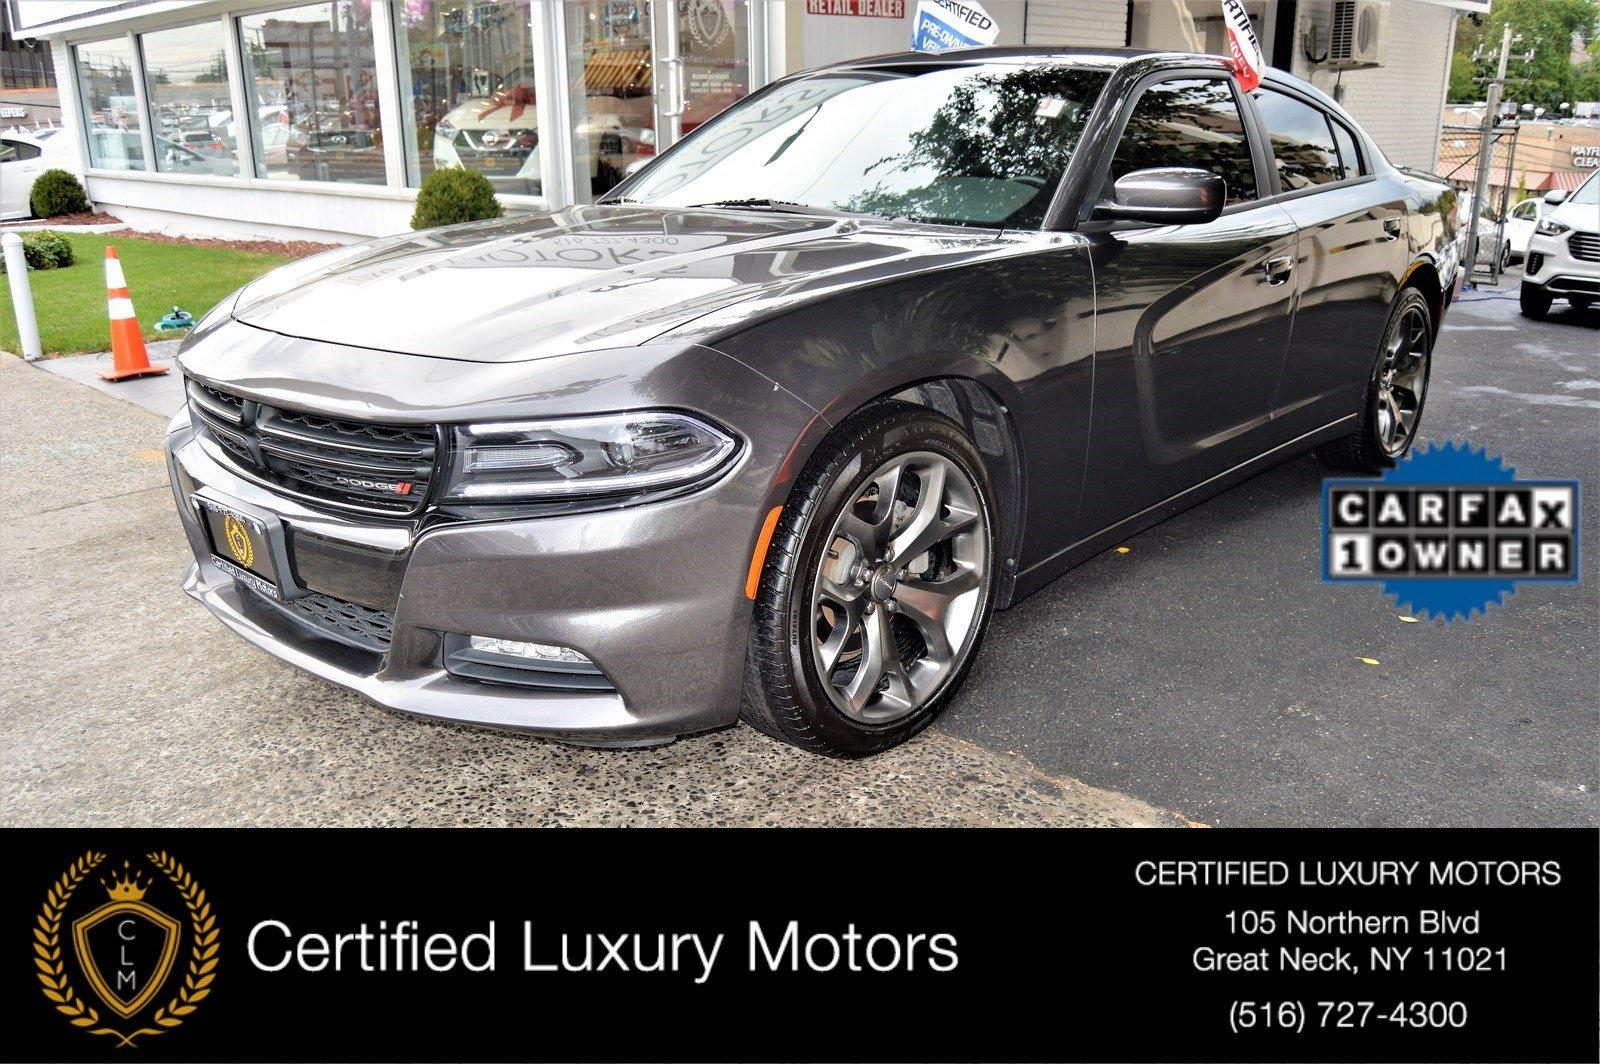 2015 Dodge Charger Sxt Stock 0063 For Sale Near Great Neck Ny Ny Dodge Dealer